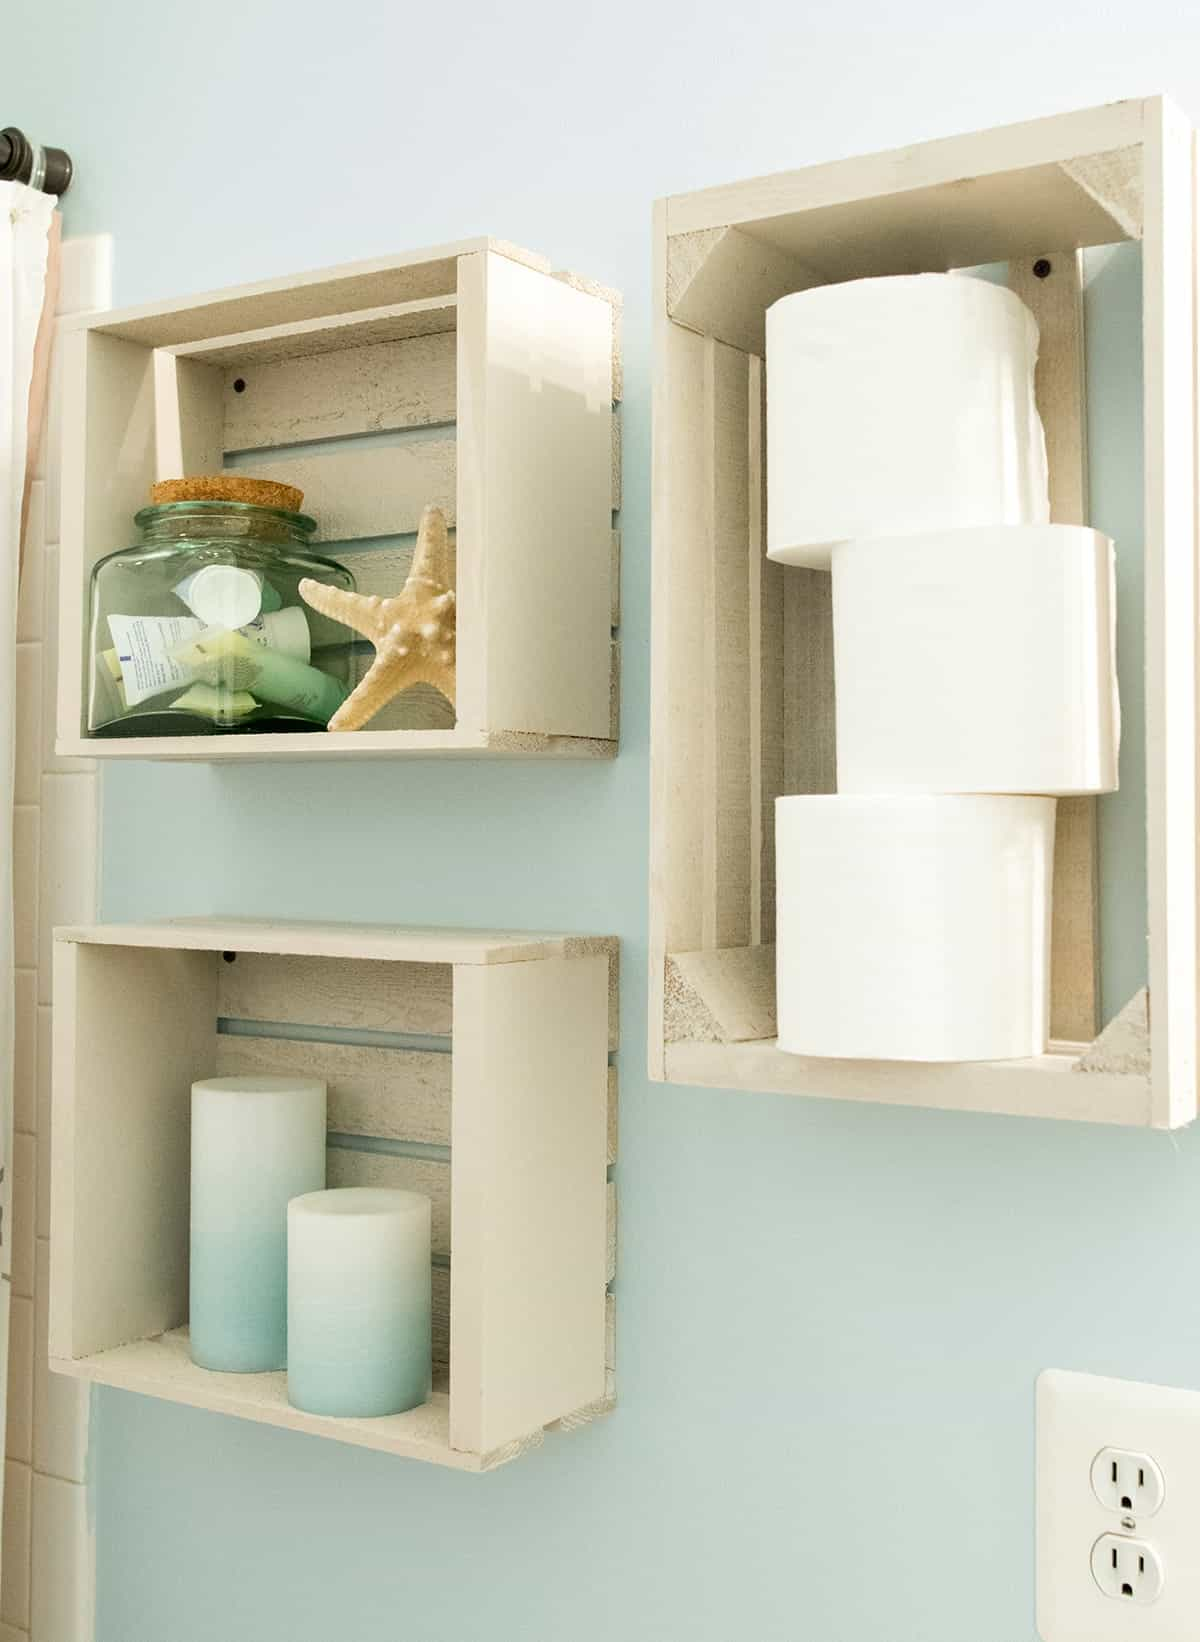 Light wooden crates used for shelving in bathroom with candles, toiletries, and beach decor.